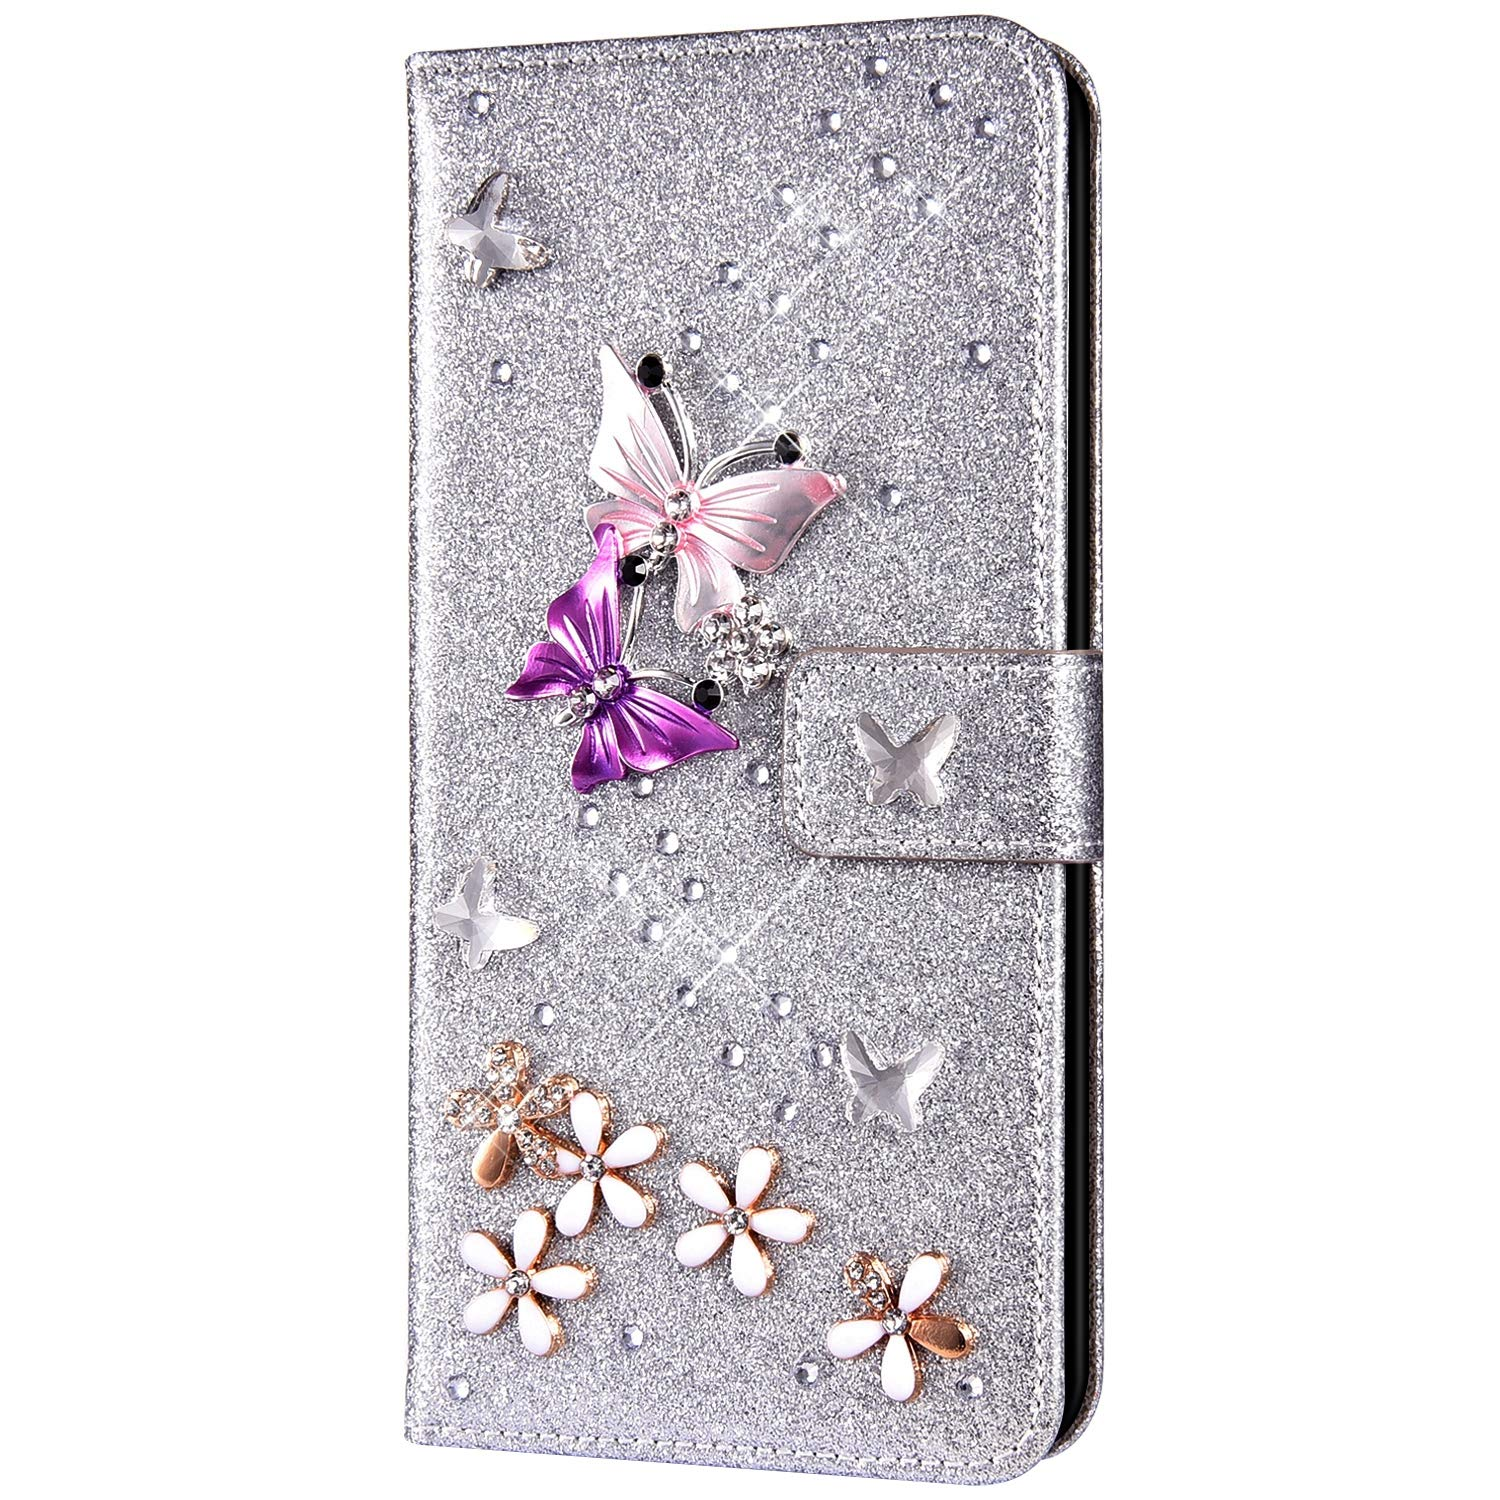 Case for Huawei P30 Lite Flip Case Premium PU Leather Wallet Case 3D Handmade Glitter Bling Shiny Diamond Butterfly with Card Slots Kickstand for Huawei P30 Lite,Silver by ikasus